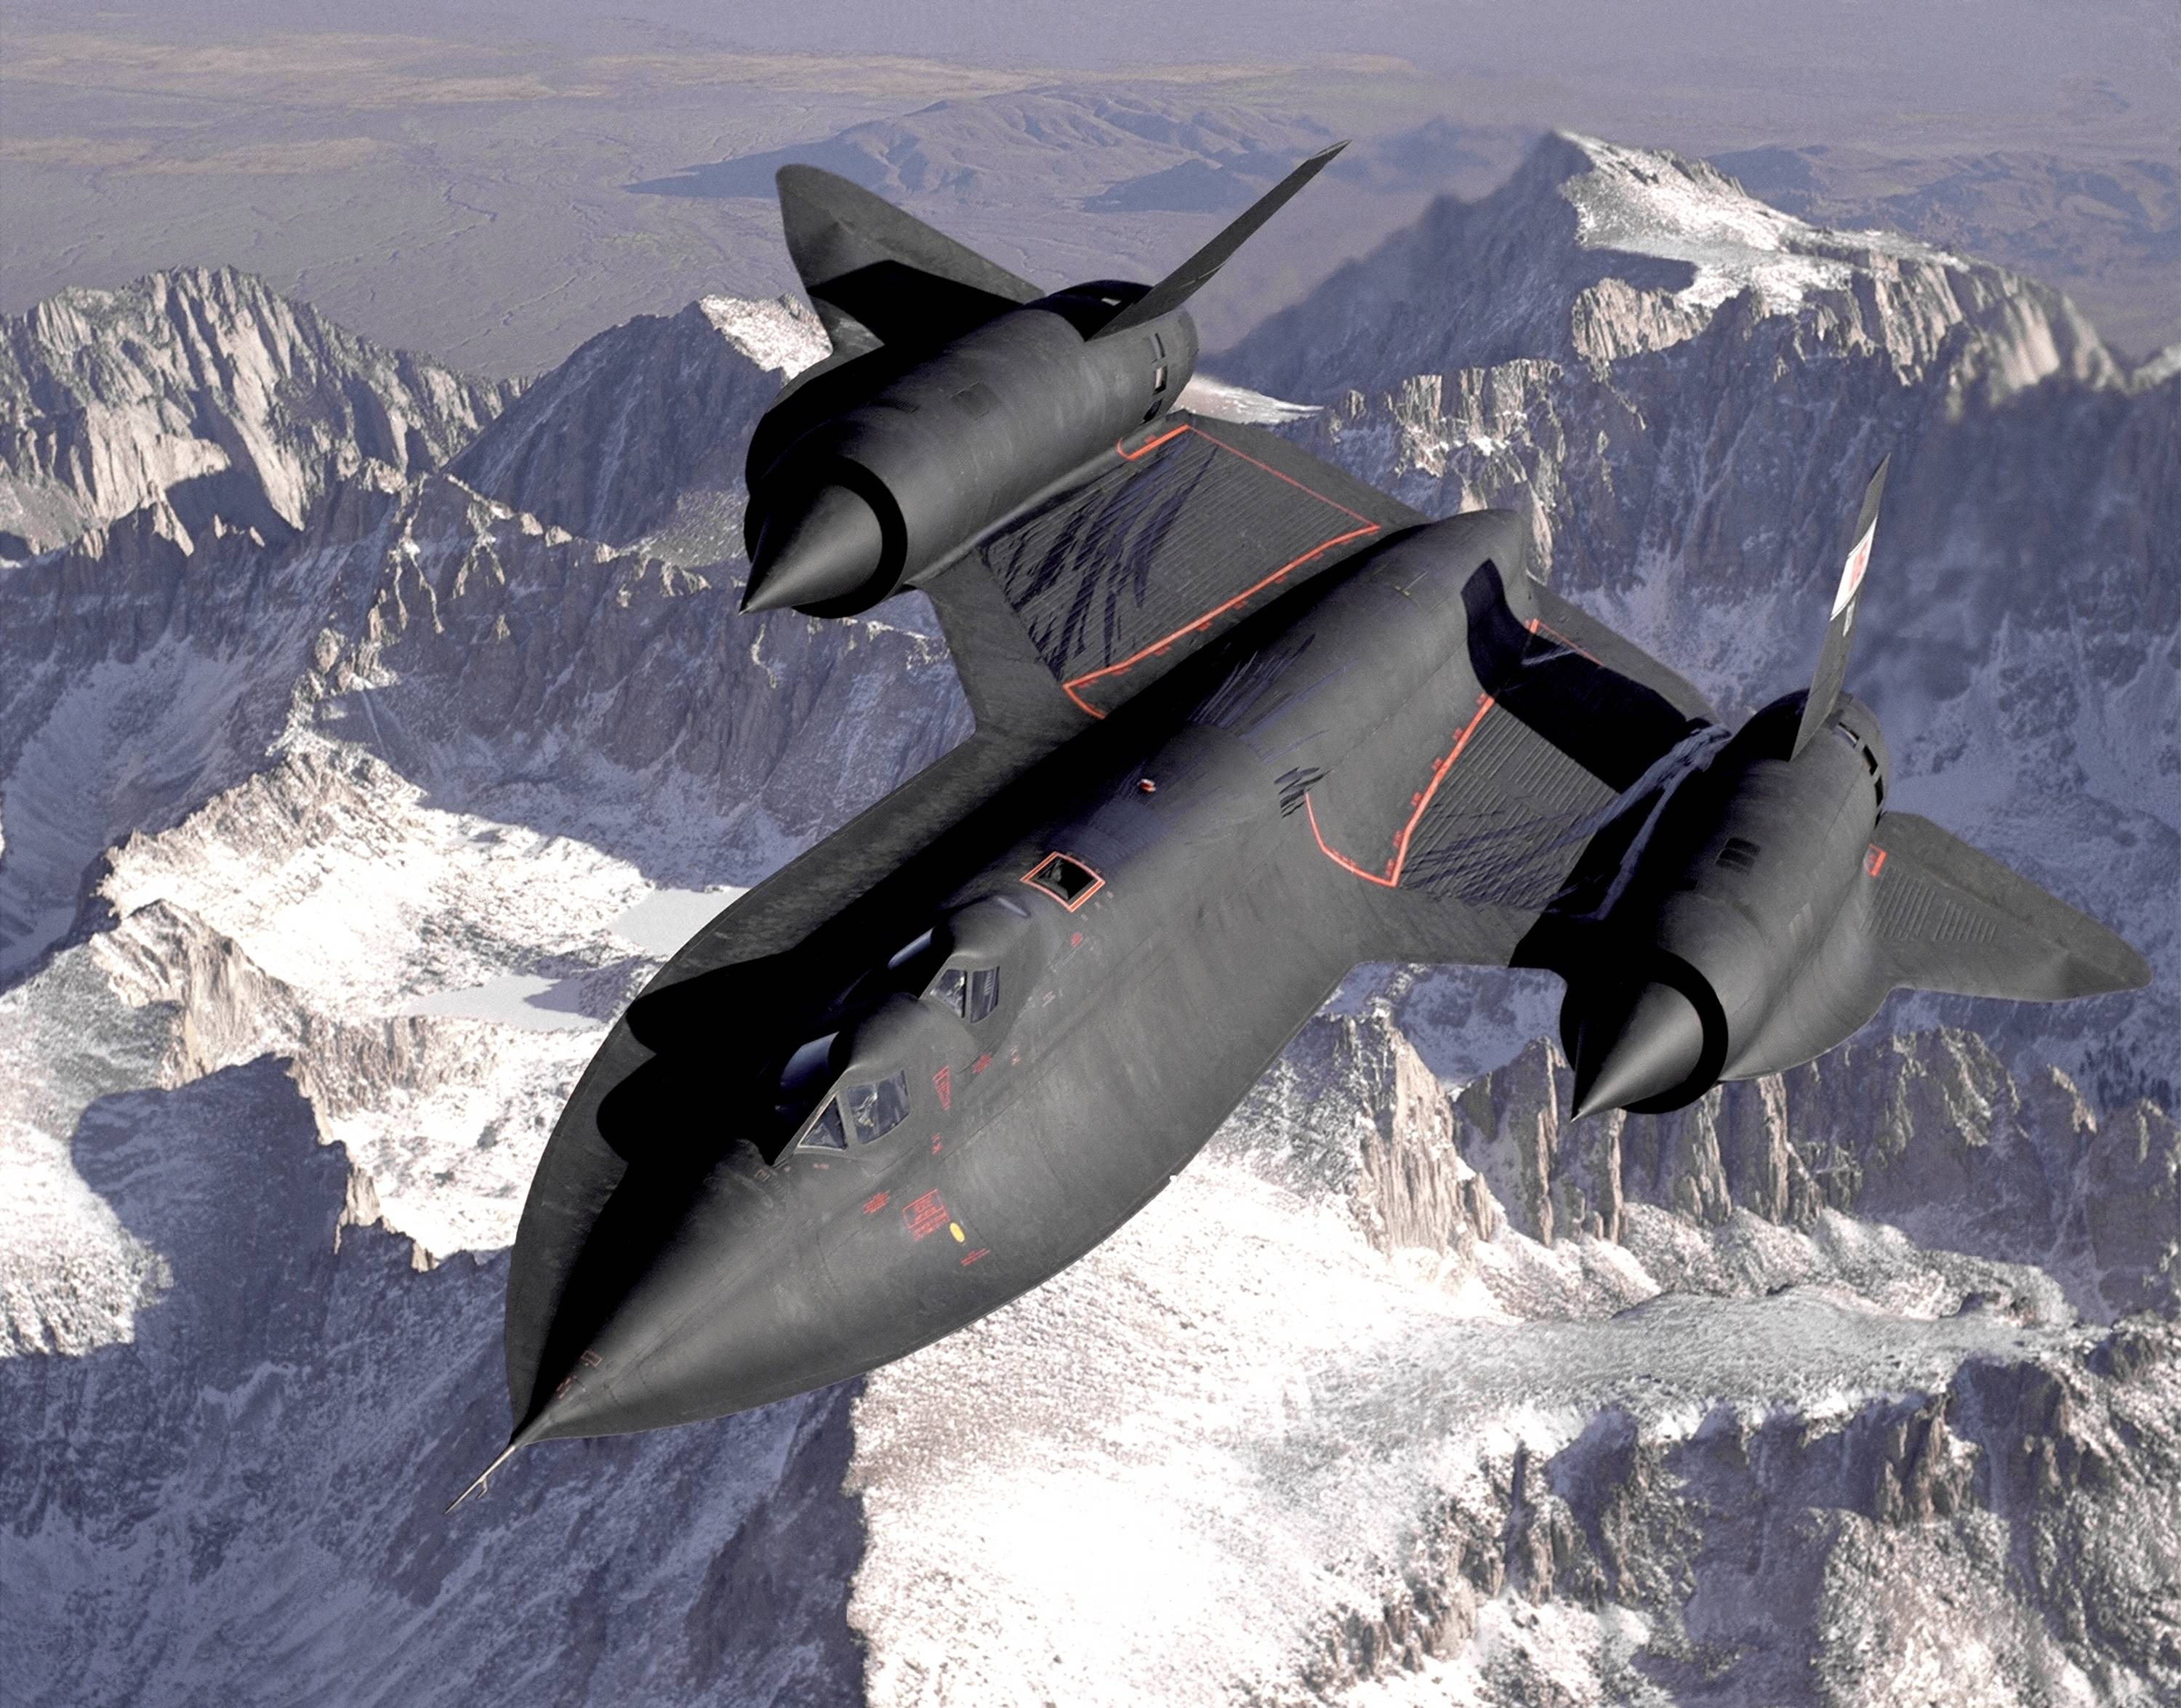 10 New Sr 71 Blackbird Wallpaper FULL HD 1080p For PC Background